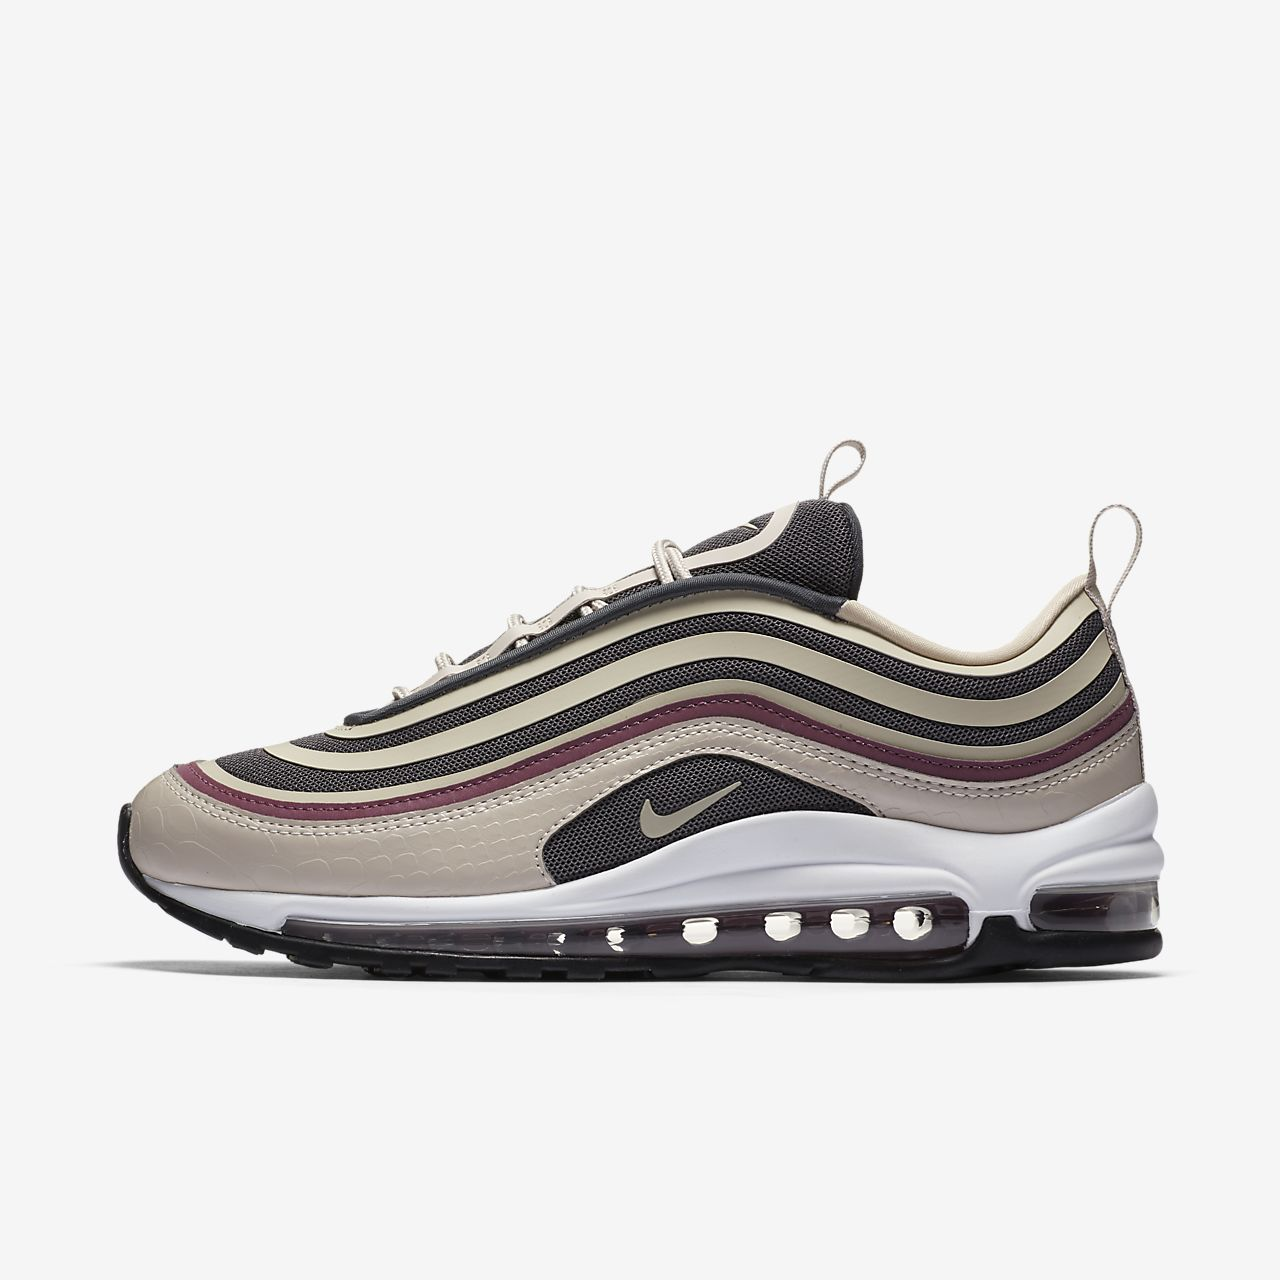 online retailer 355ee 7969c Buy Cheap Nike Air Max 97 Undefeated Shoes Sale 2018